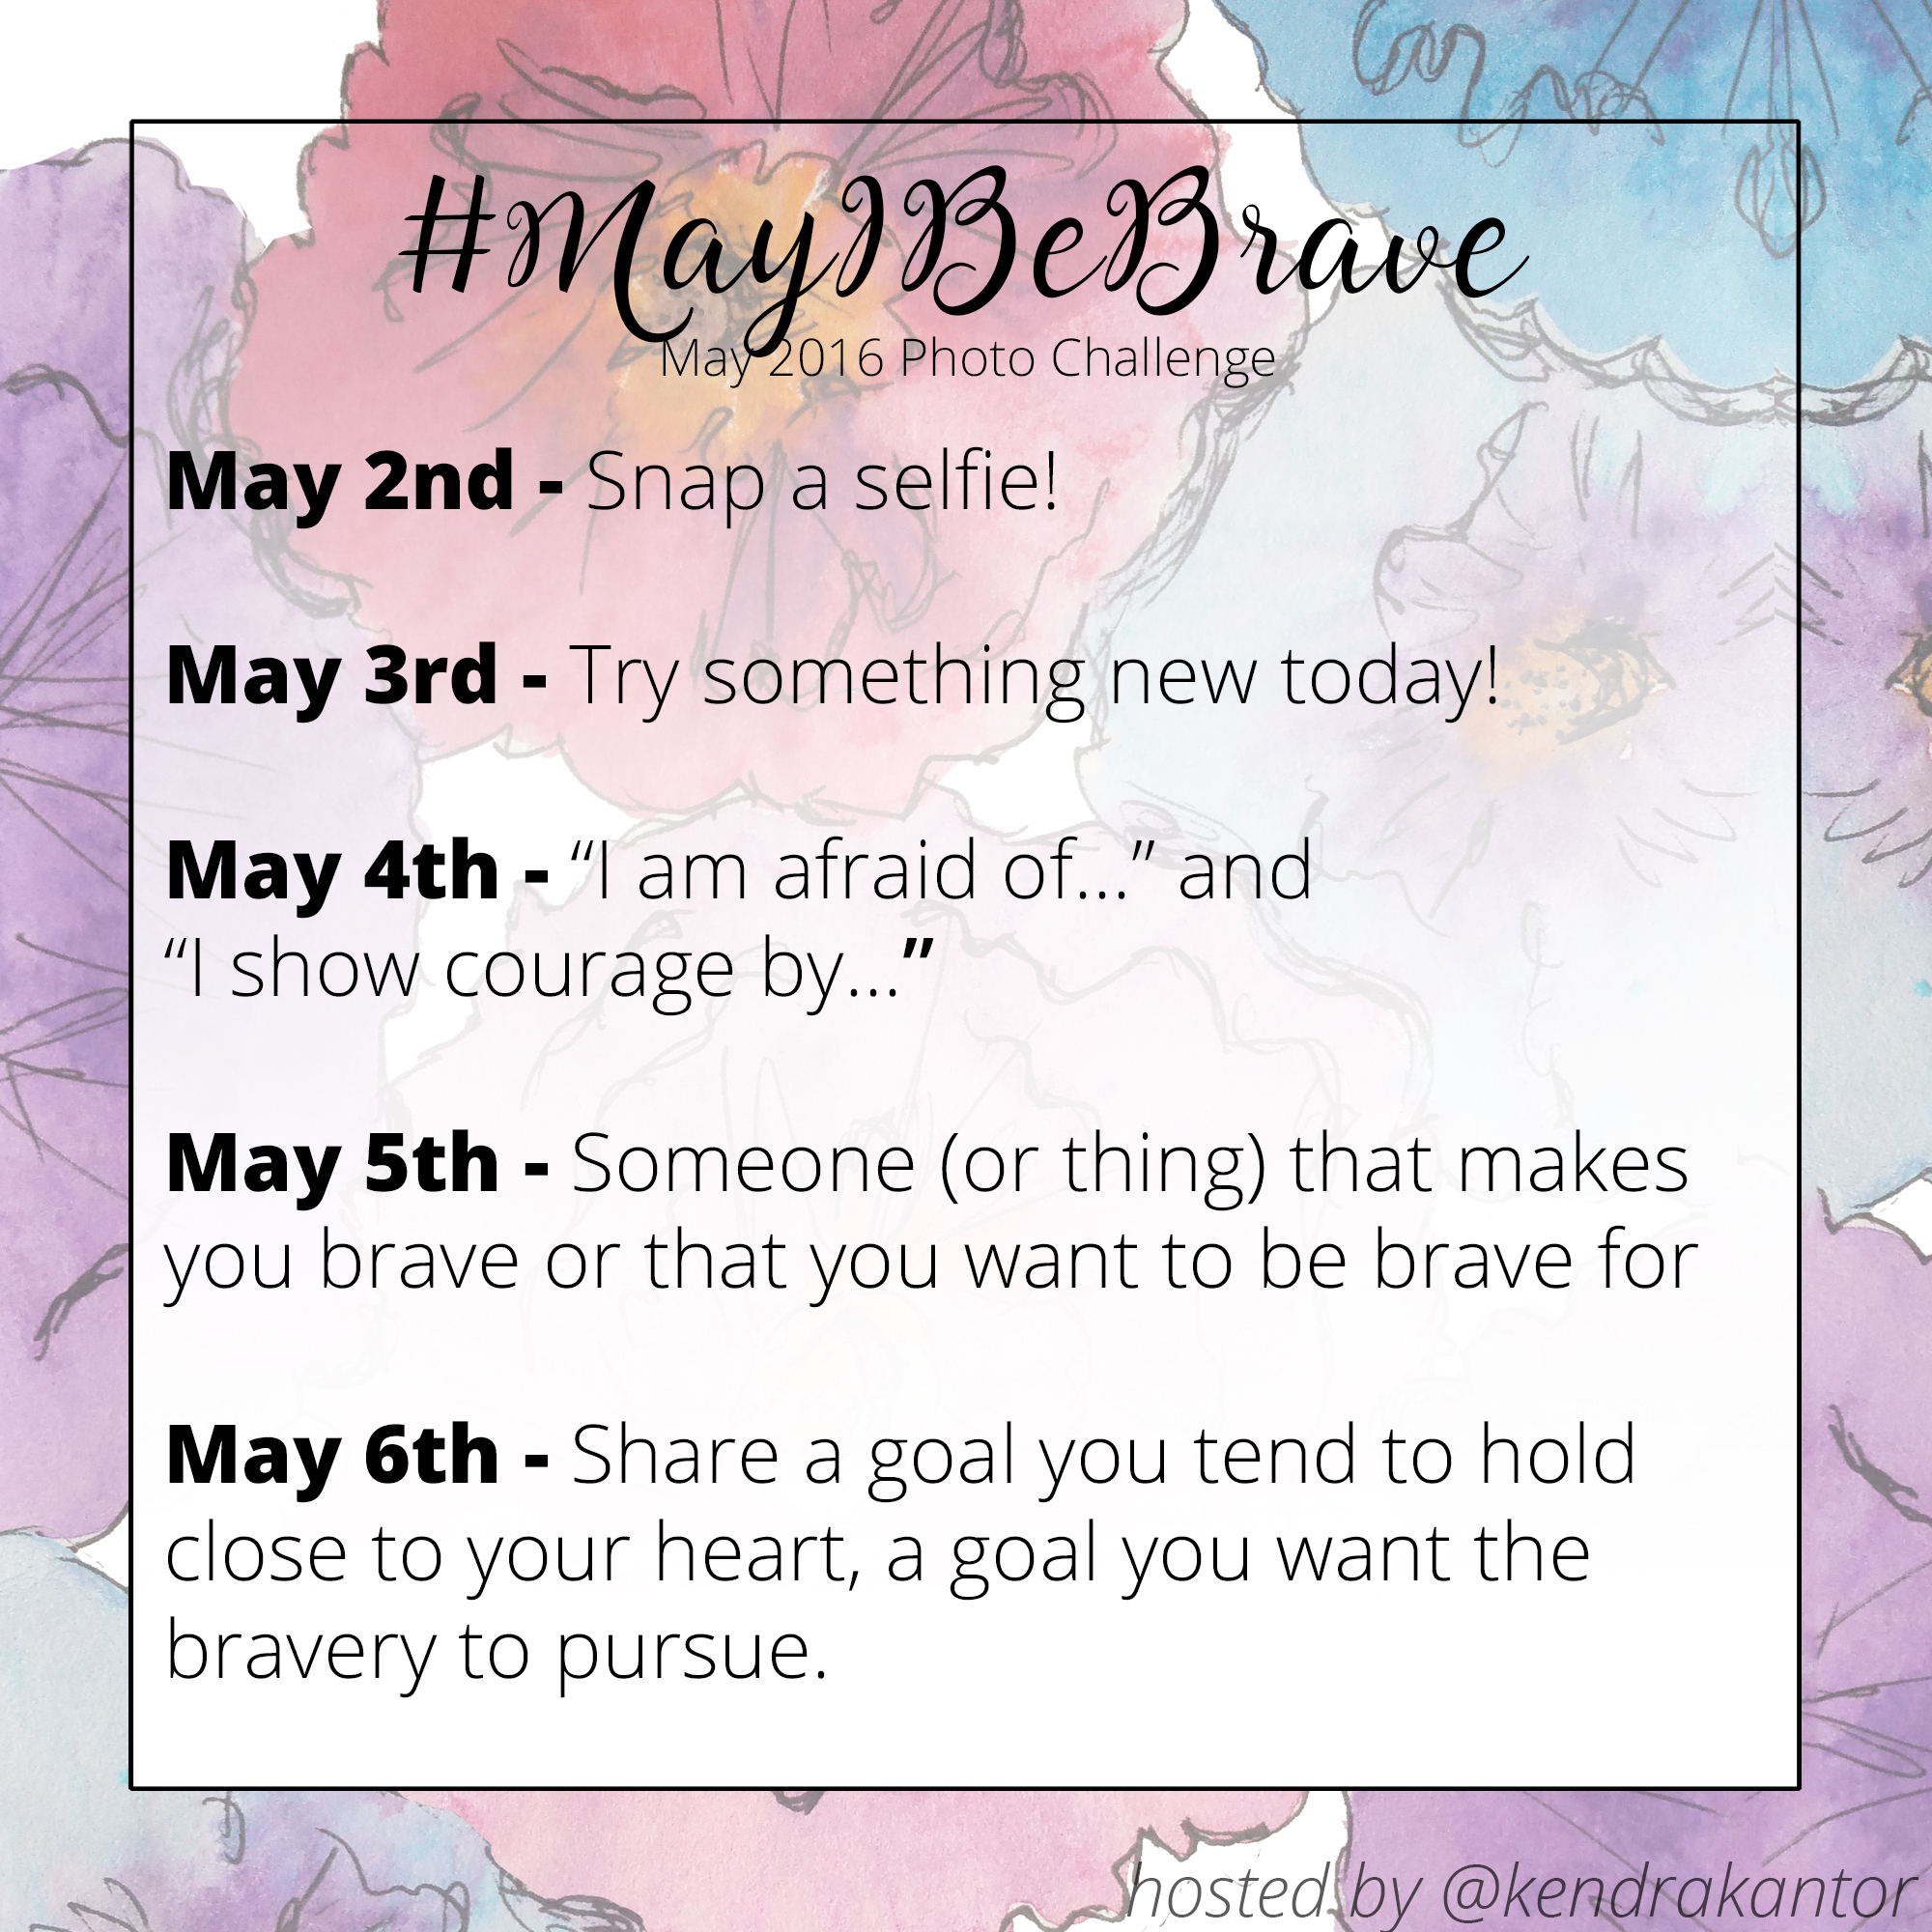 #MayIBeBrave 5 Day Instagram Challenge Starts May 2nd 2016 from Kendra Kantor | http://kendrakantor.com